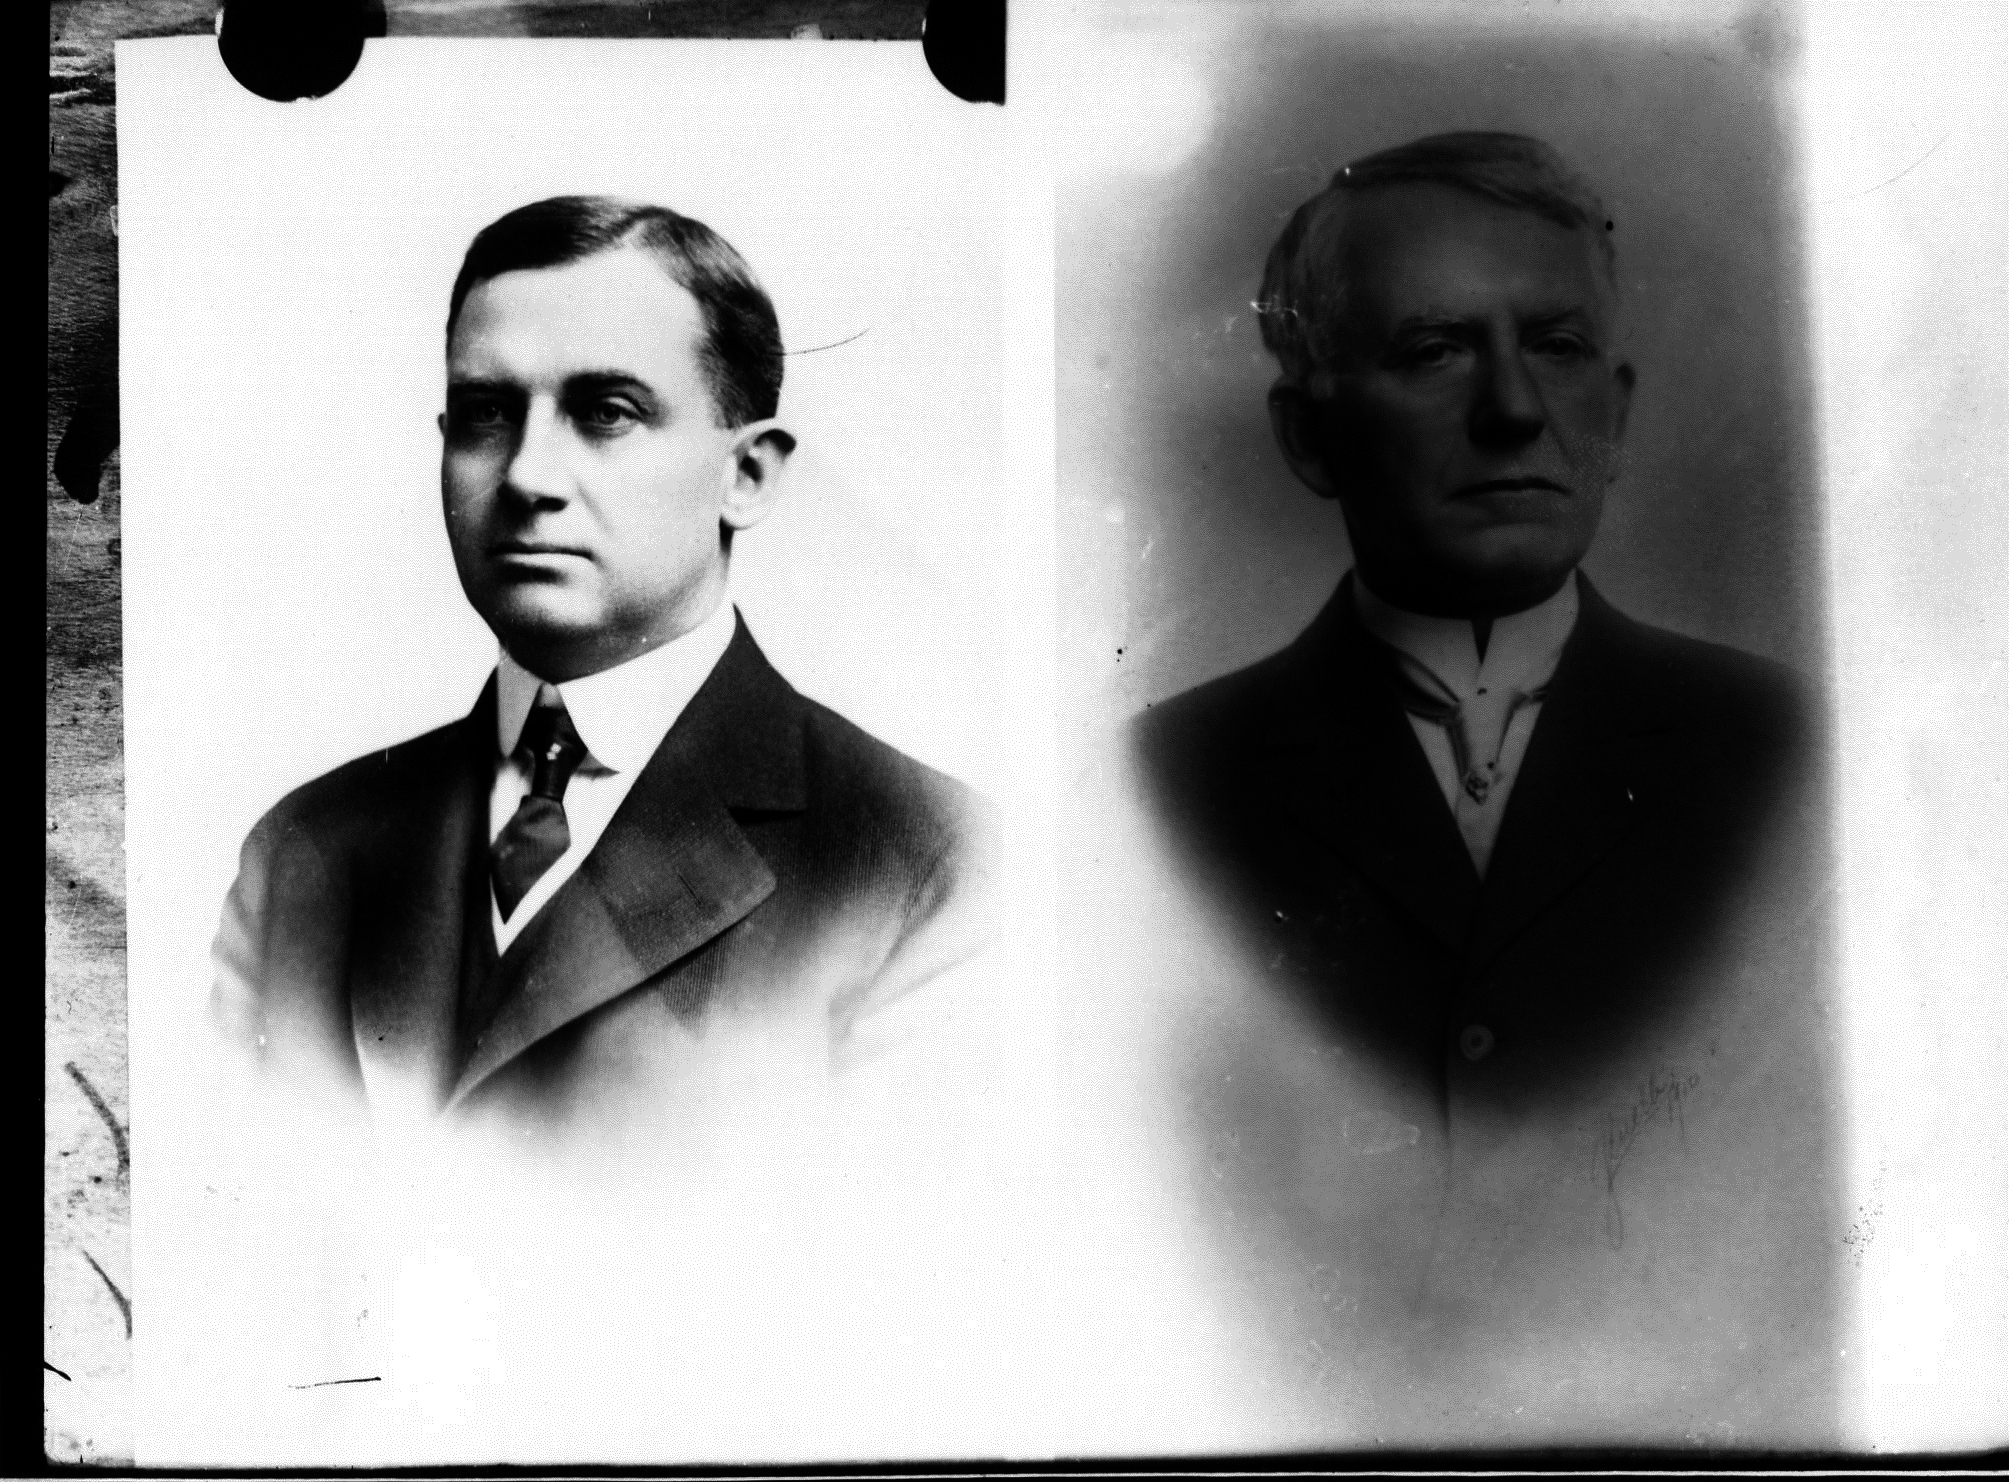 photo of Portrait of an Unidentified Man